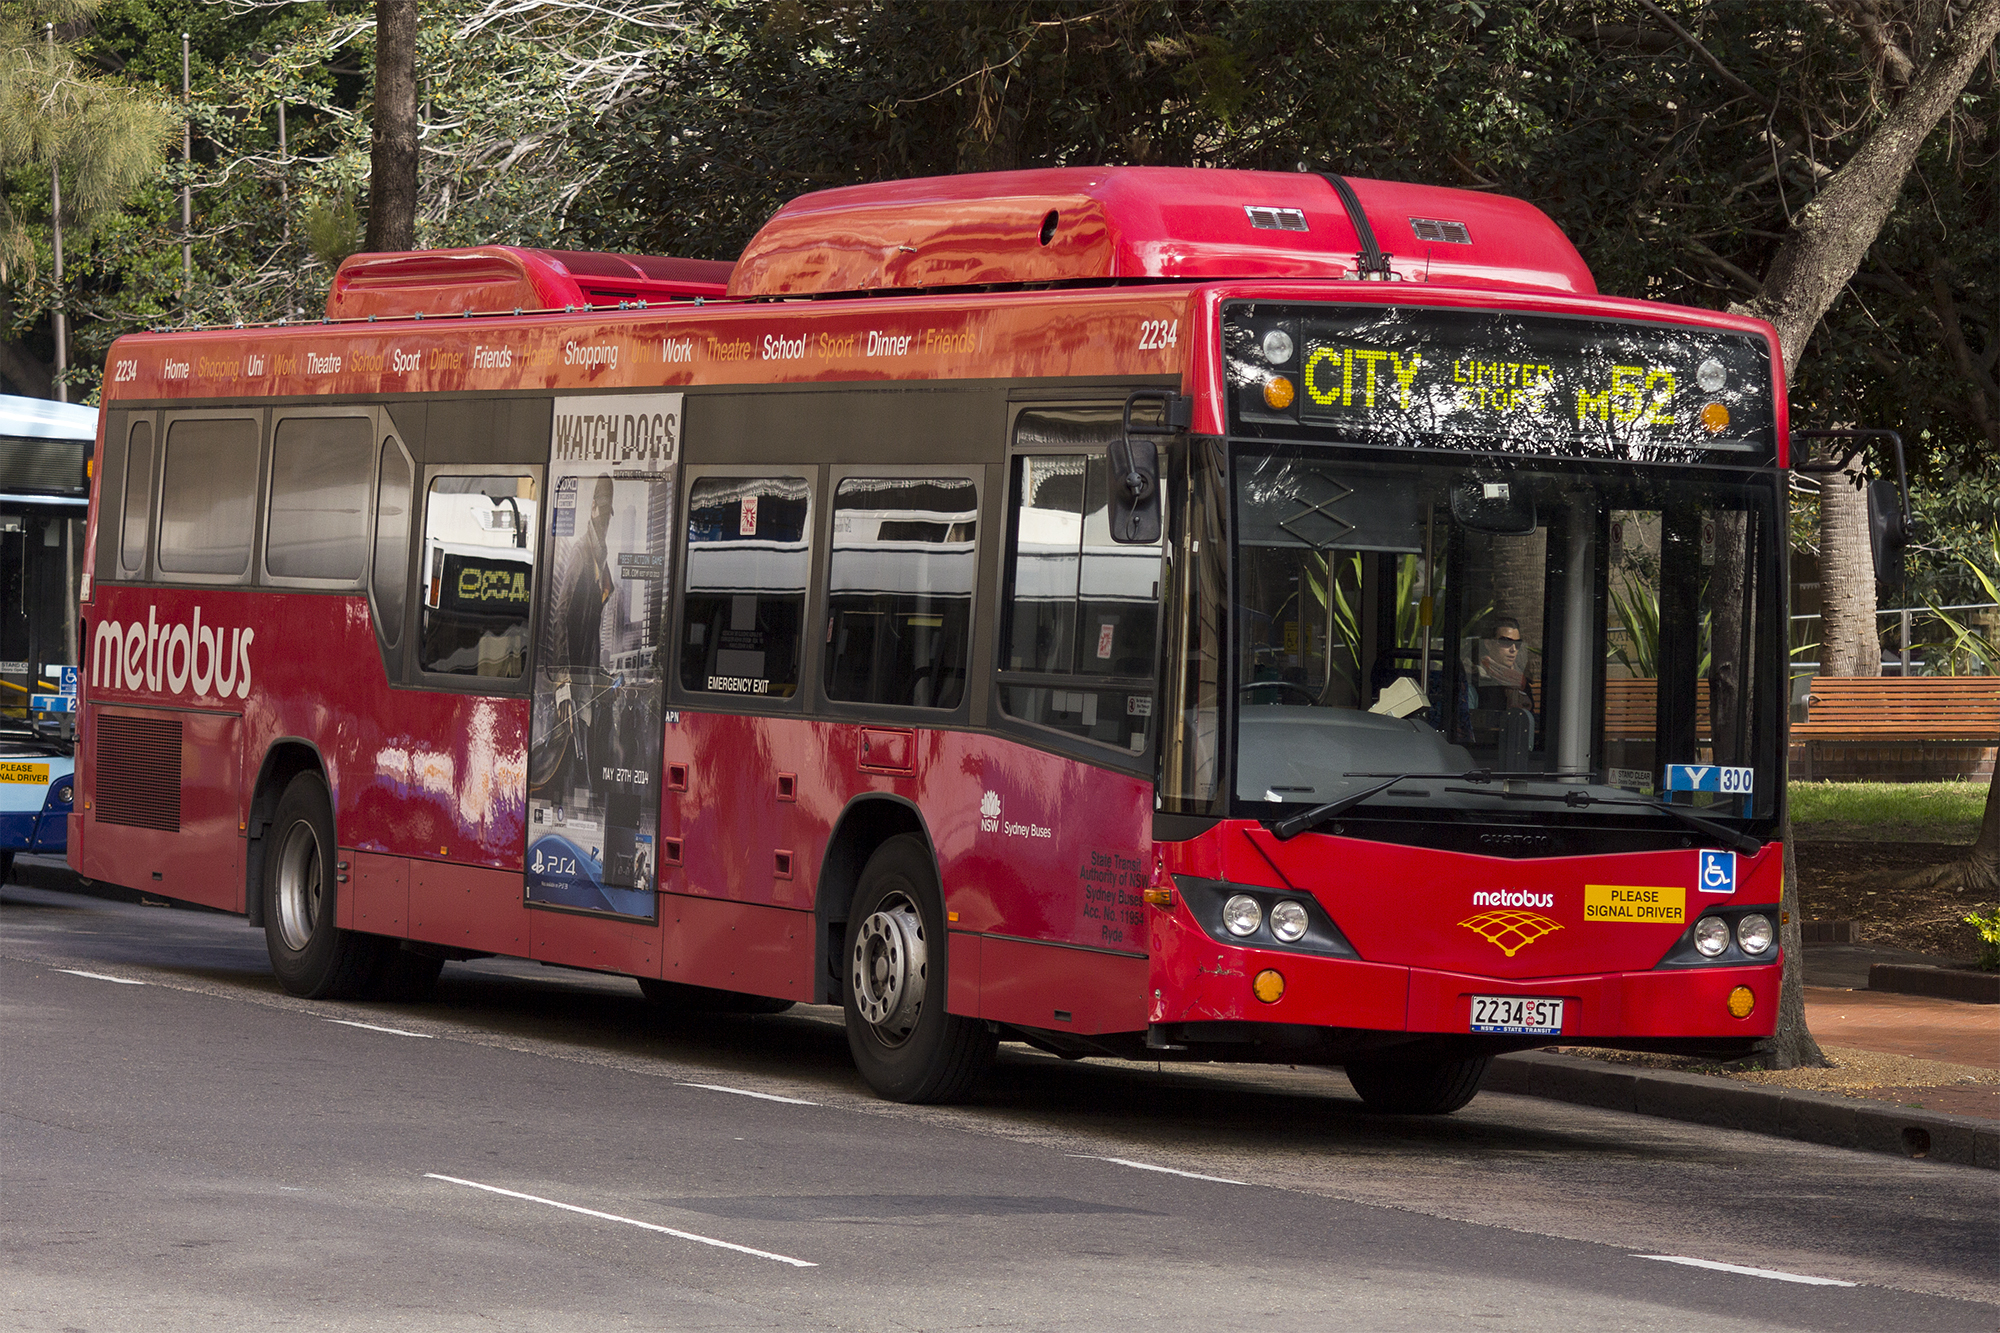 File:Metrobus liveried (2234 ST), operated by Sydney Buses, Custom Coaches